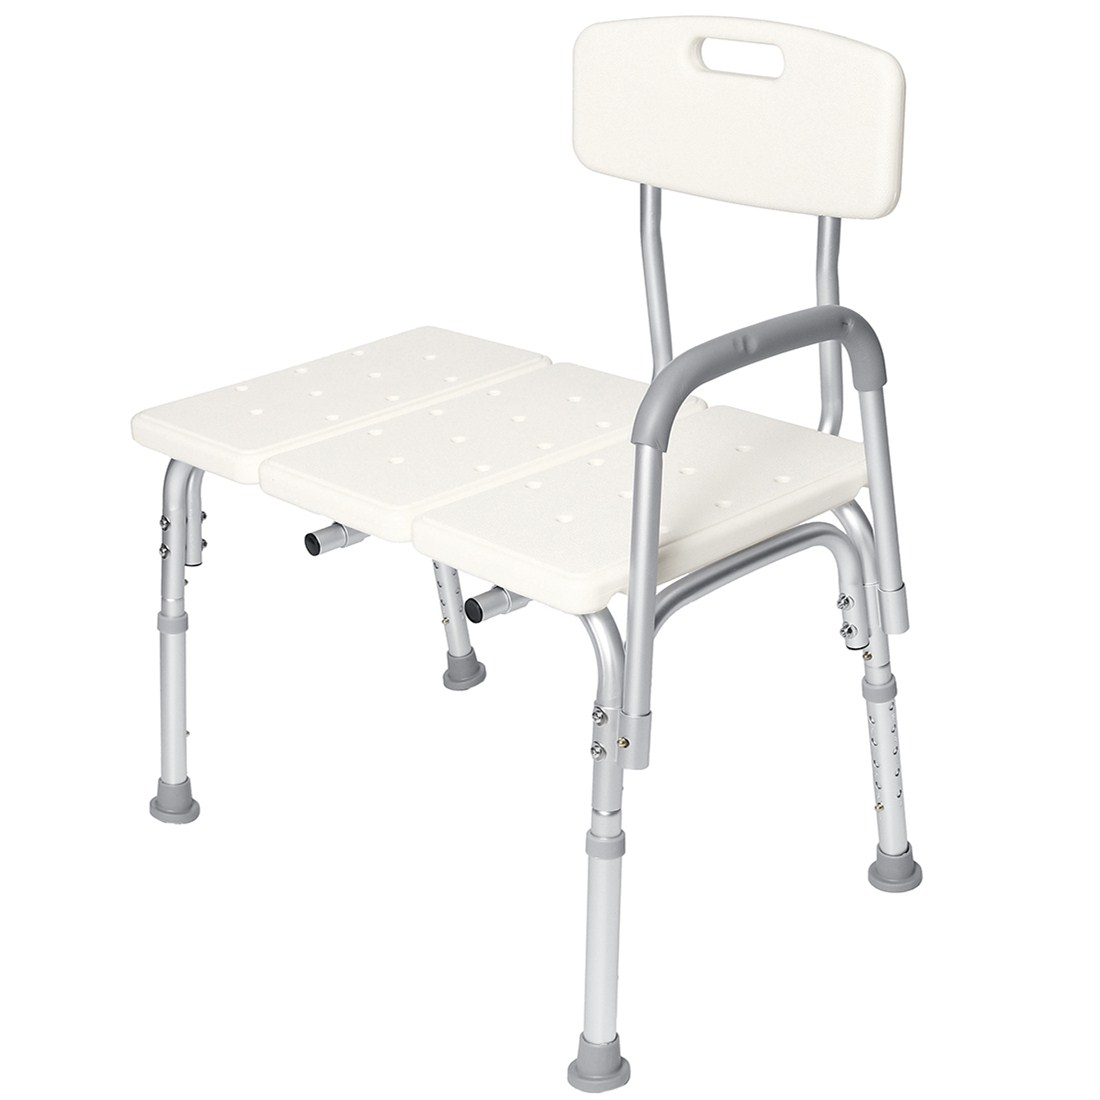 Household Shower Chair Transfer Bench Height Adjustable Bath Tub